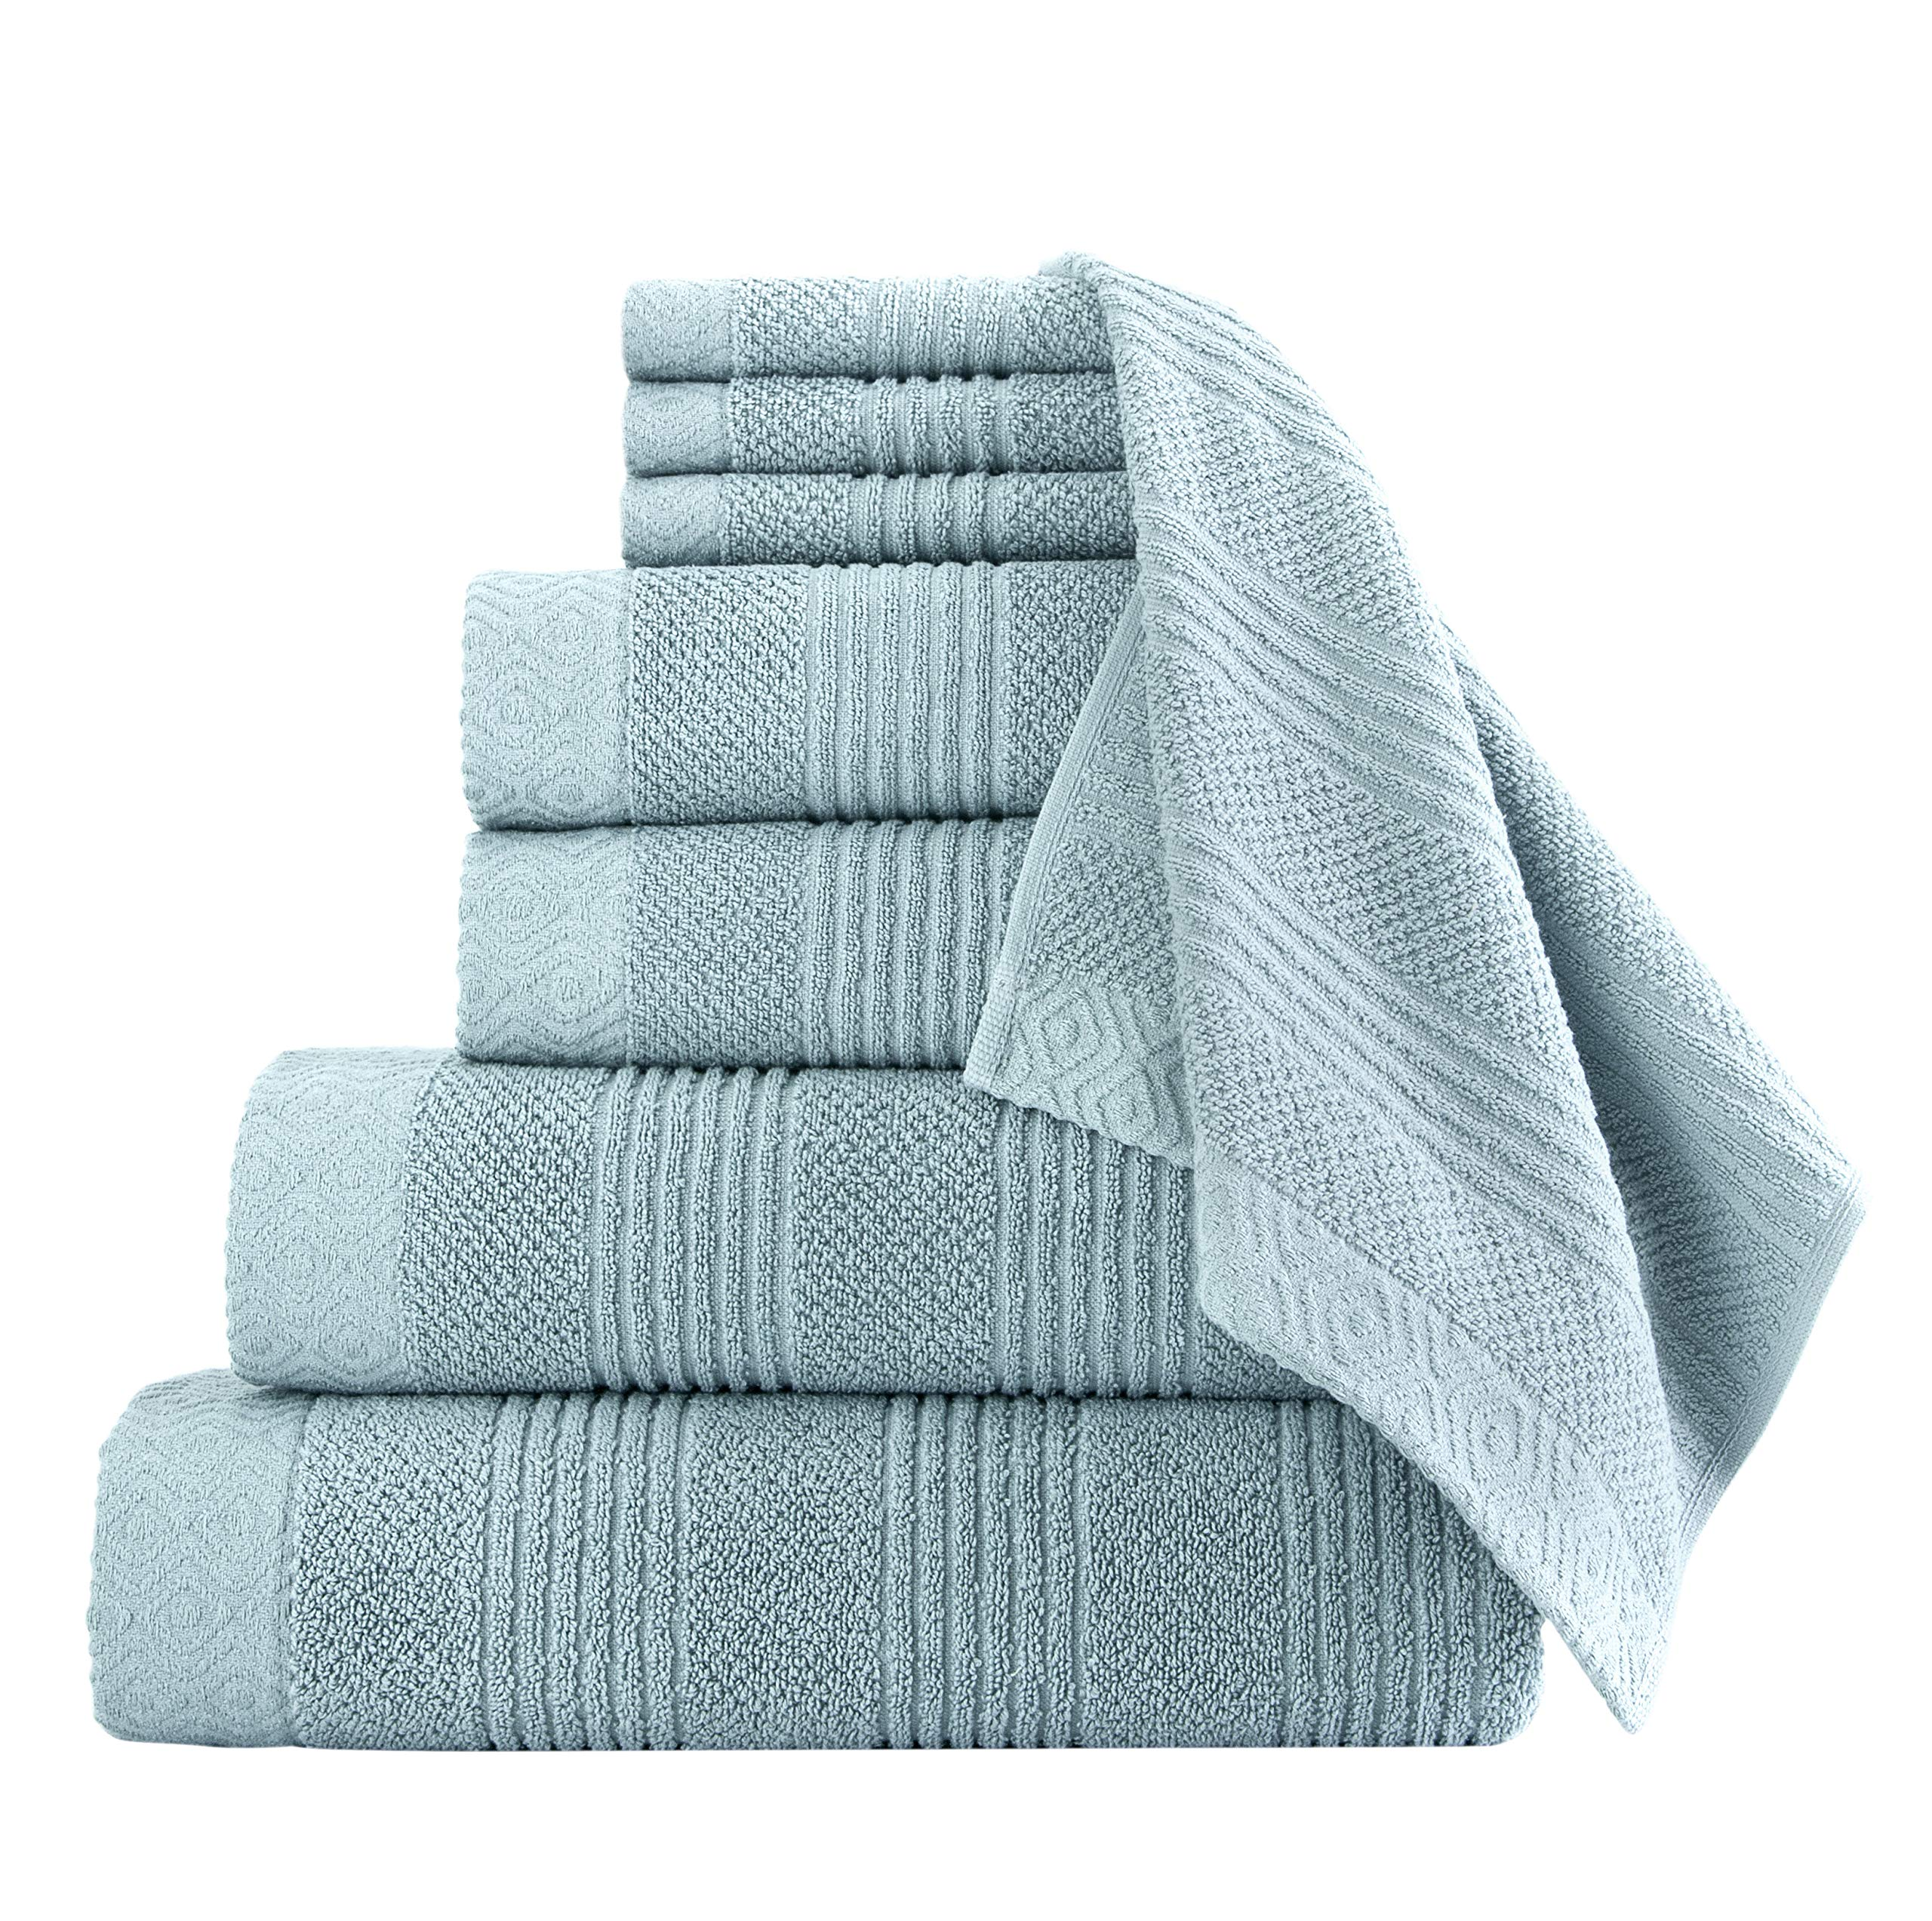 Classic Turkish Towels Luxury Bath Towel Set - Complete Bathroom Set with Large Bath Sheet Included - Made with 100% Turkish Cotton (Seagrass, 8 Piece Set)